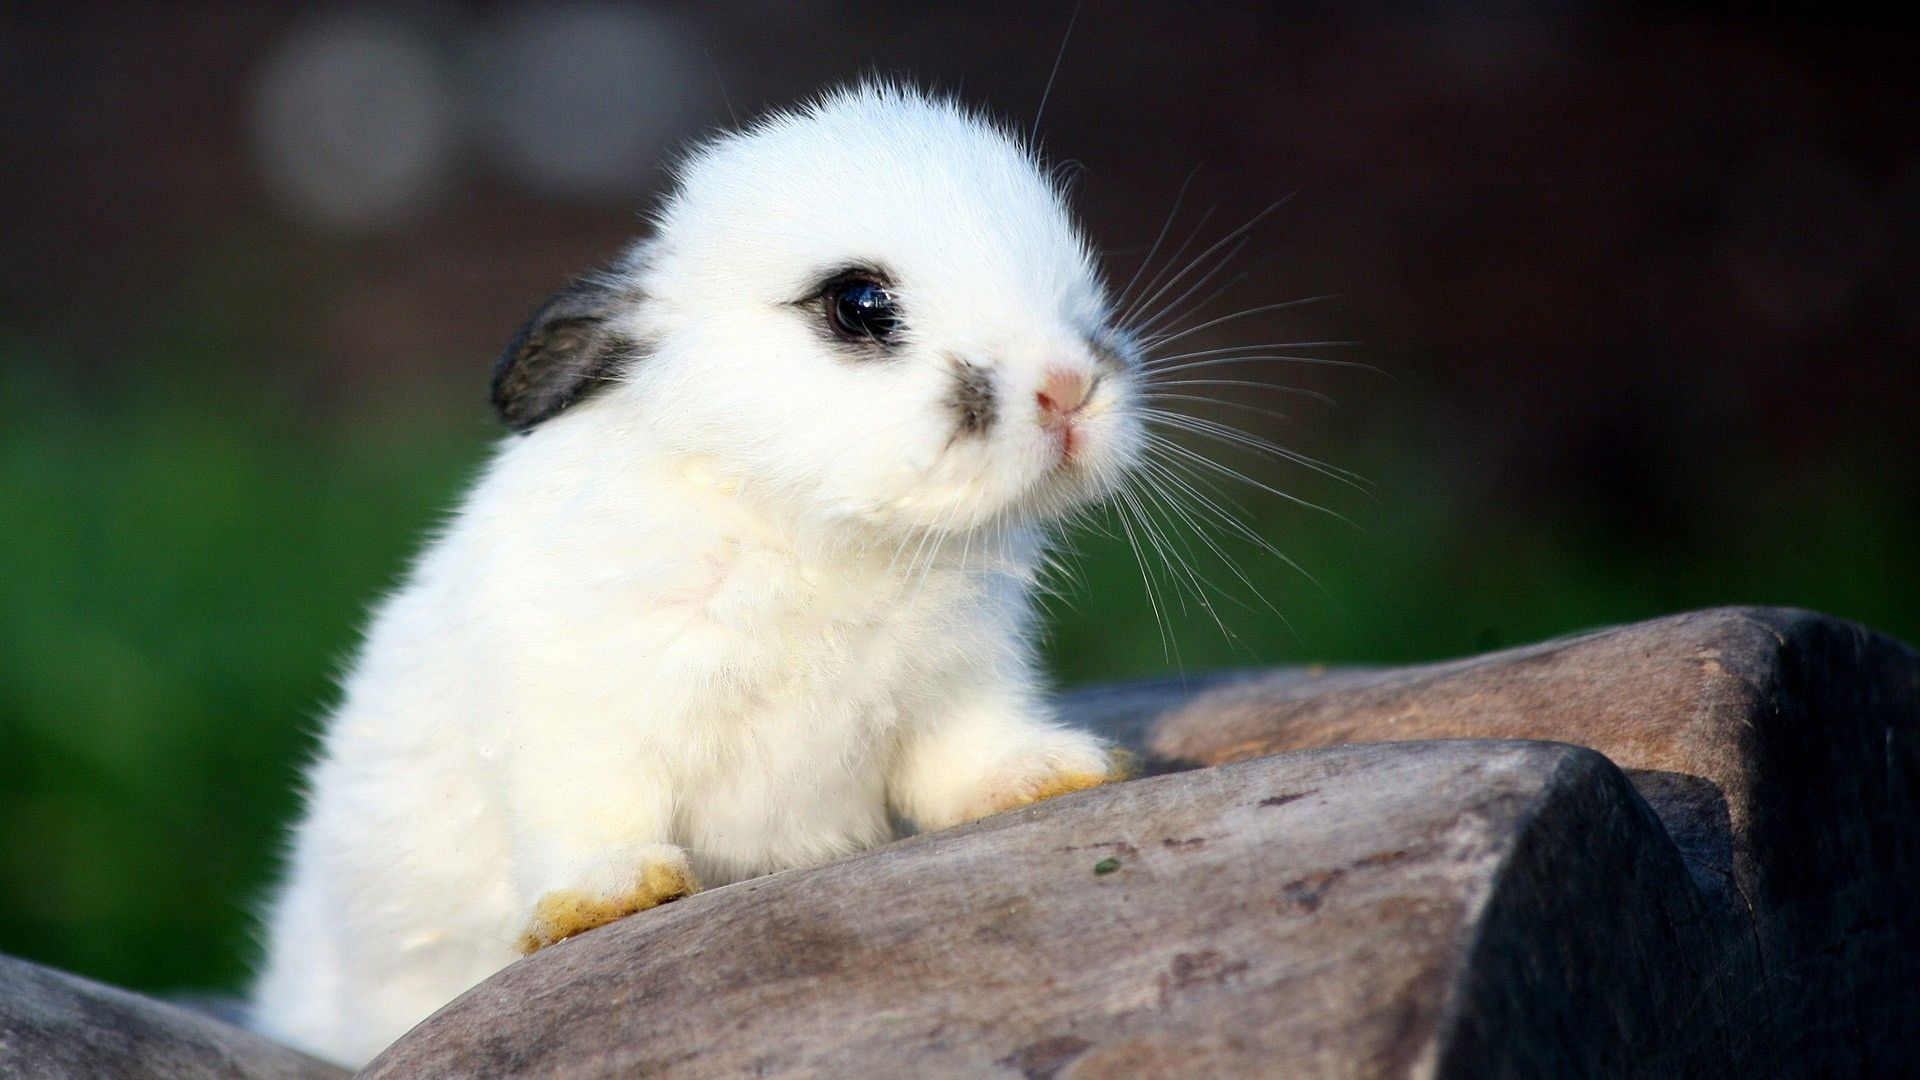 Baby Animal Wallpaper HD Images One HD Wallpaper 1920x1080